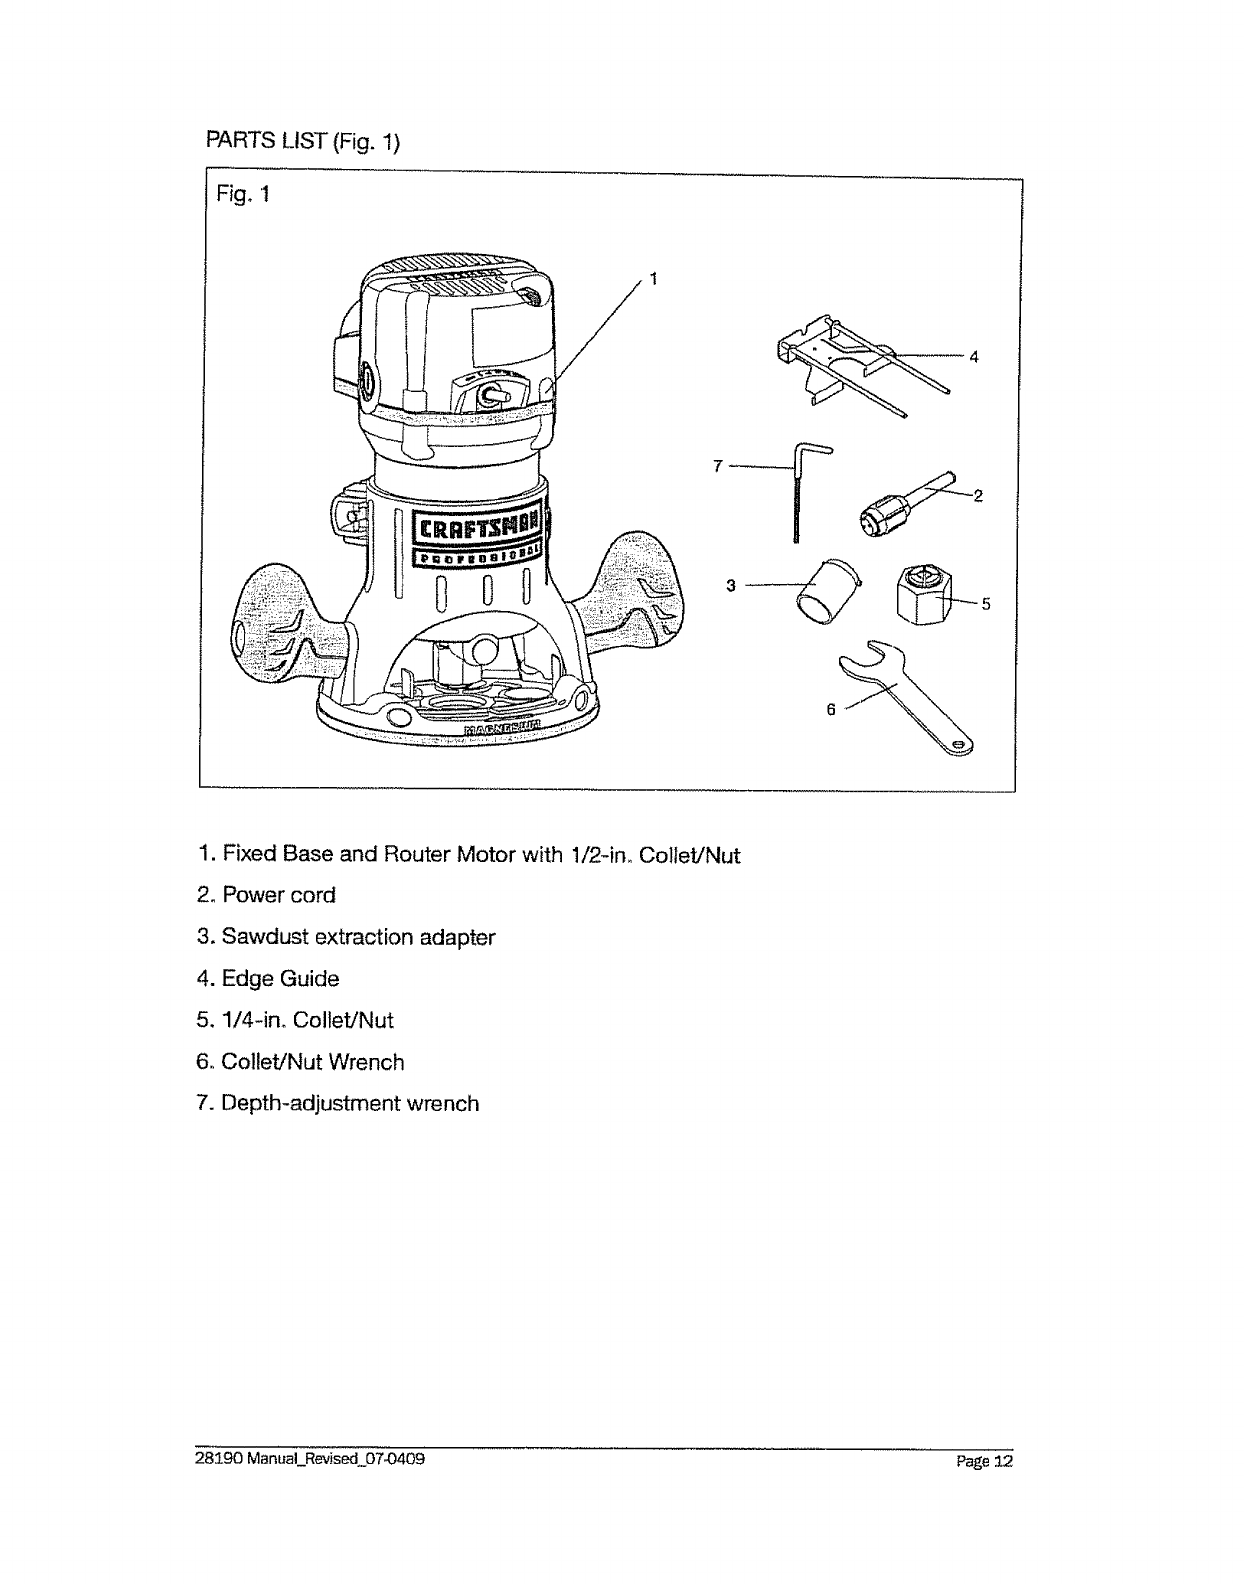 Page 12 of Craftsman Router 320.2819 User Guide